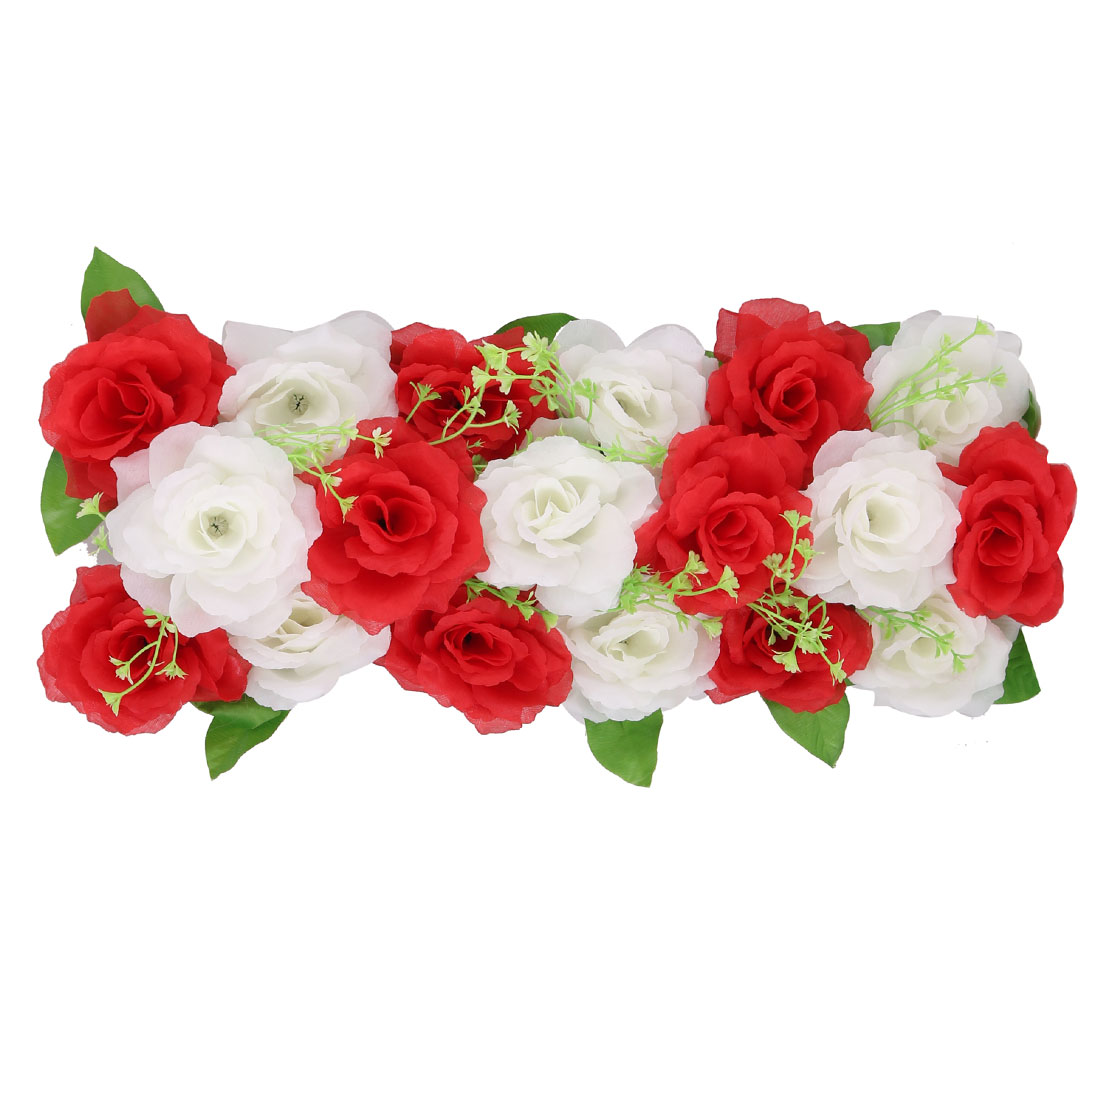 Wedding Fabric DIY Wall Arch Hanging Artificial Flower Garland Decor Red  White